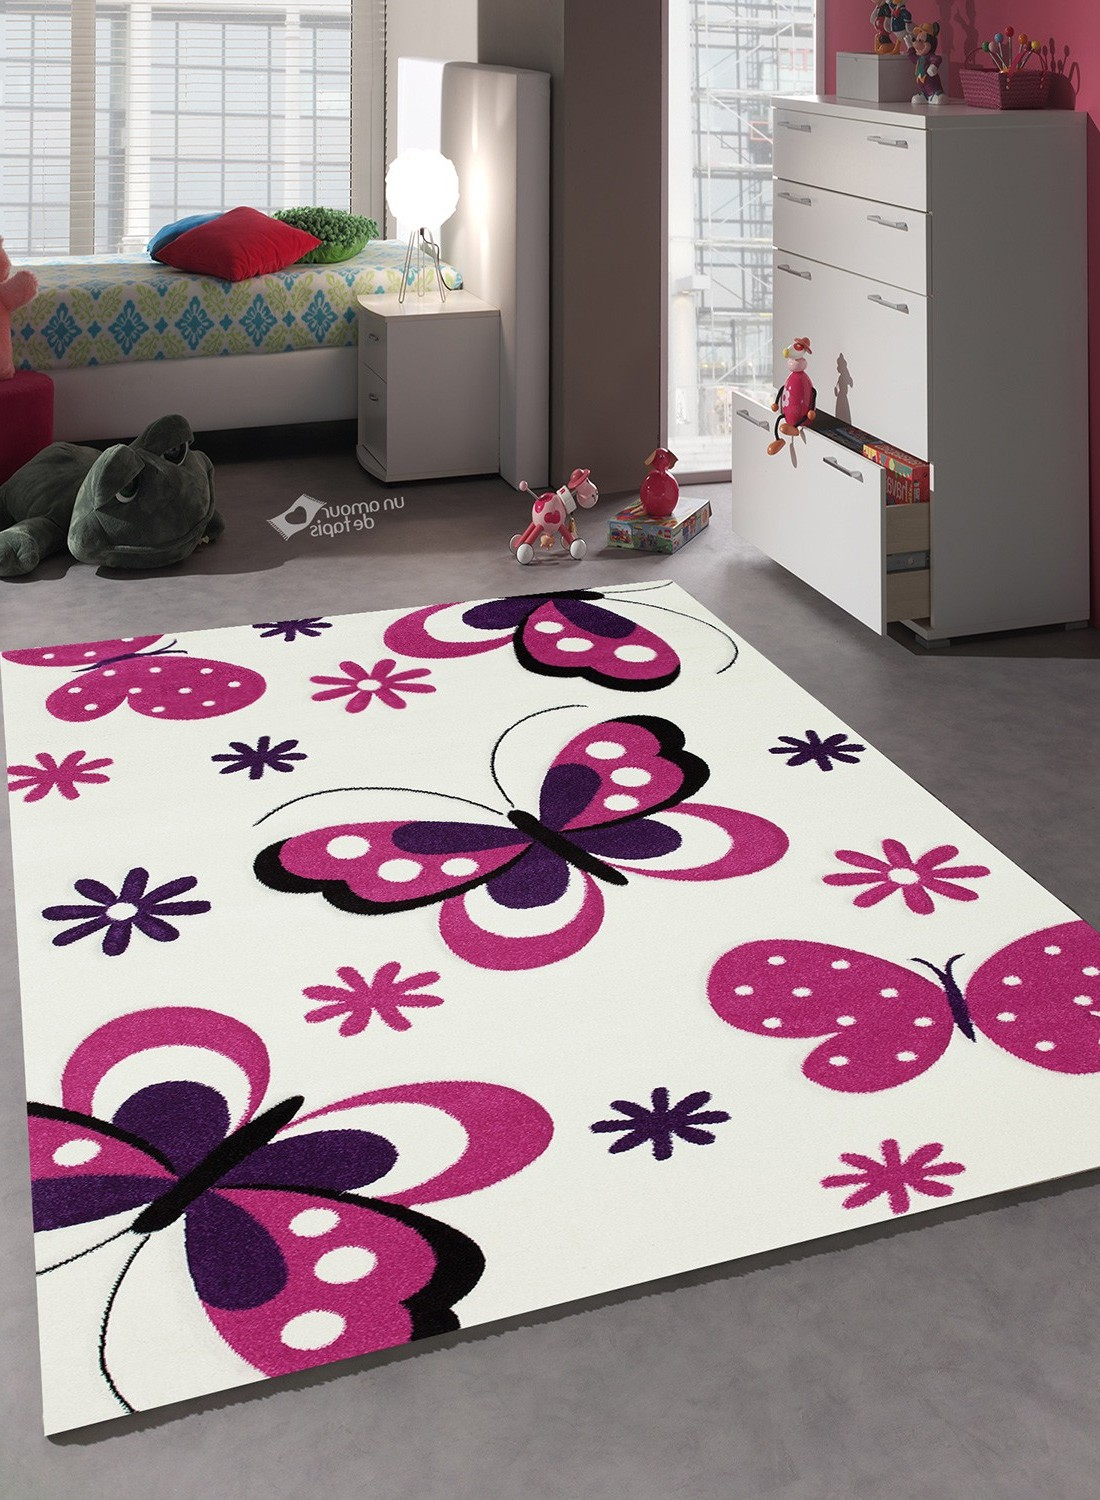 tapis papillon simple nouveauts pourpre papillon la main acrylique tapis et tapis pour la. Black Bedroom Furniture Sets. Home Design Ideas